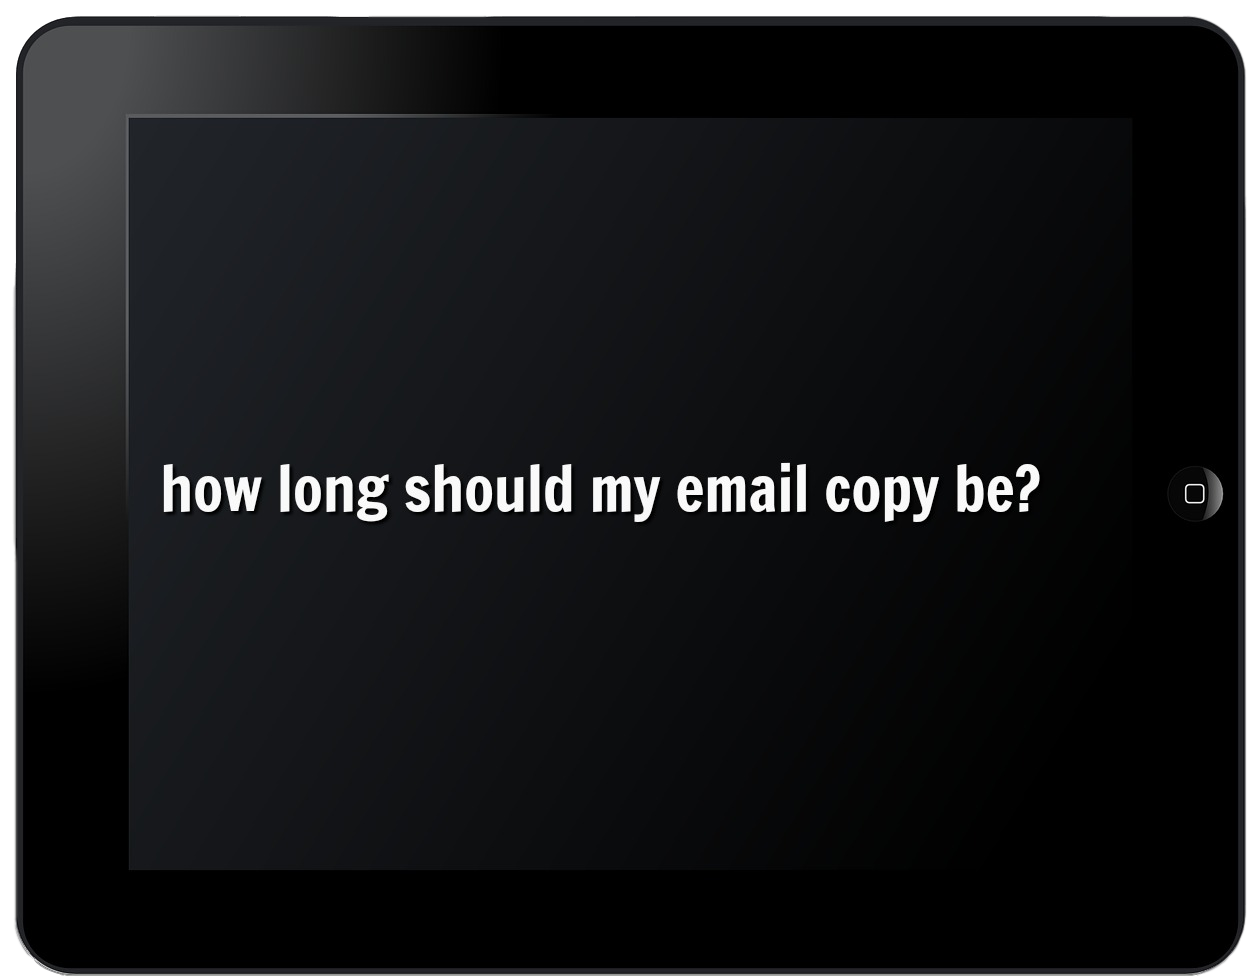 how long should my email copy be